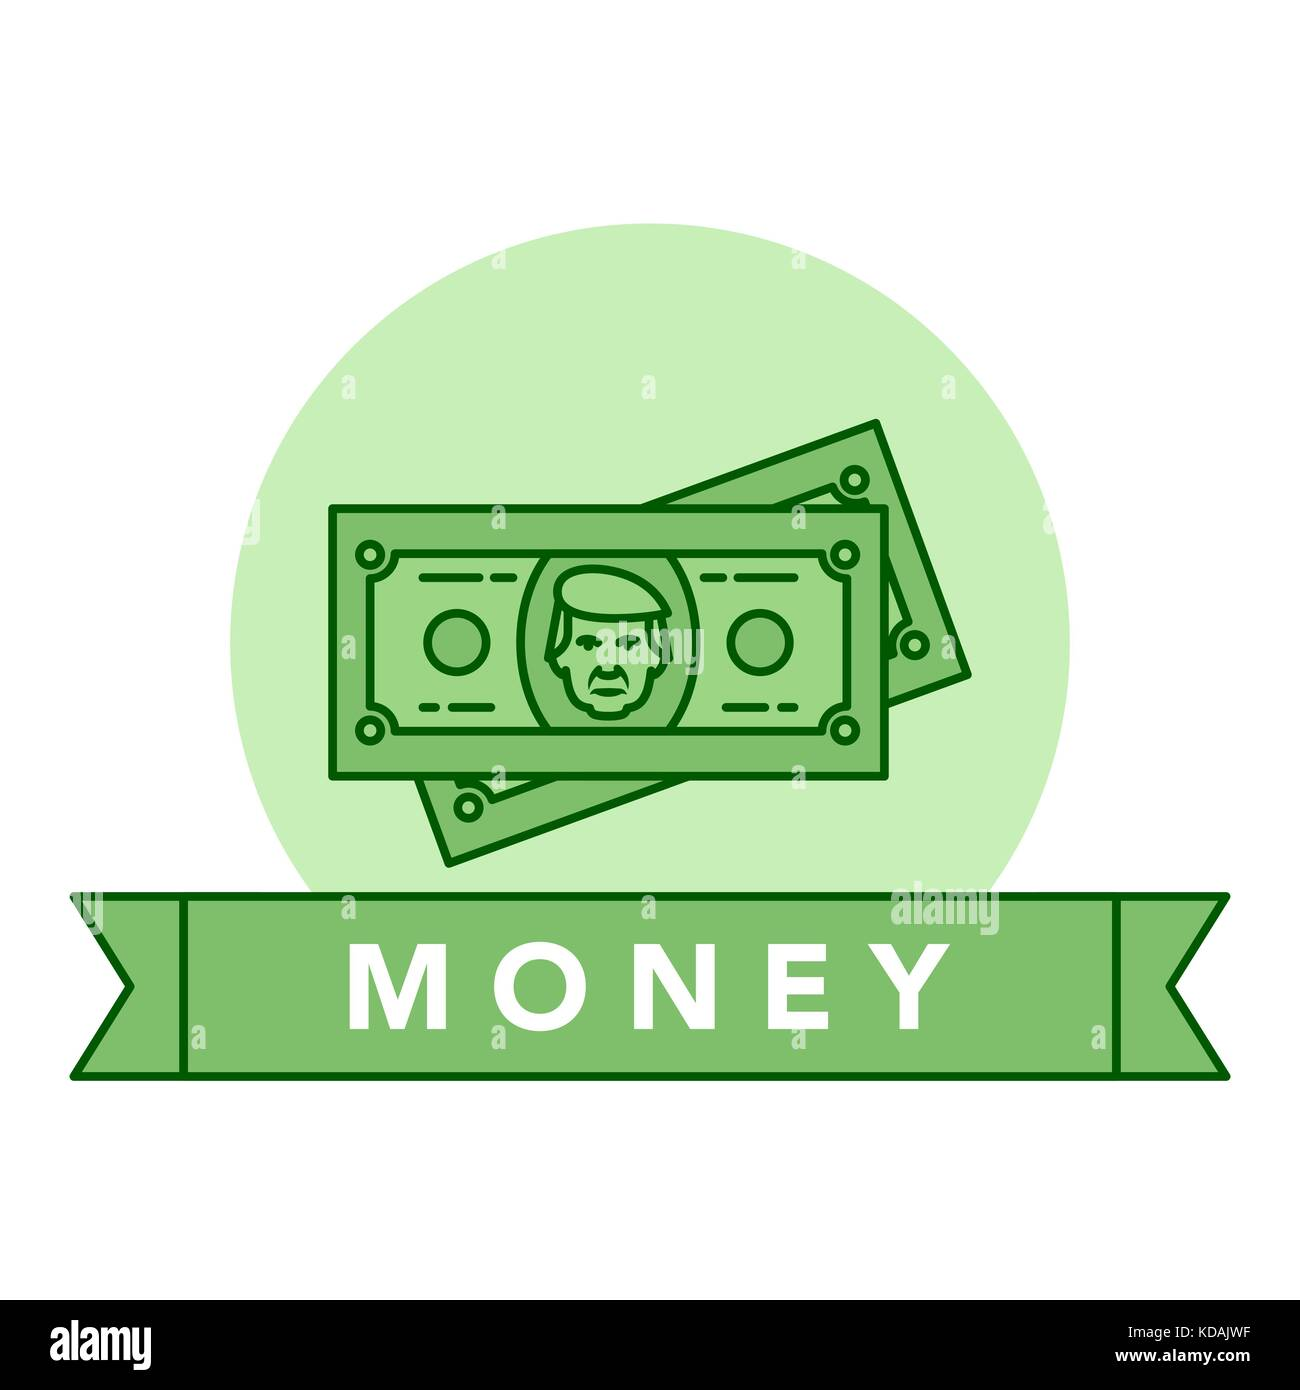 Vector illustration of the green banknote on white background with lettering. Money and financial institutions topic. - Stock Vector